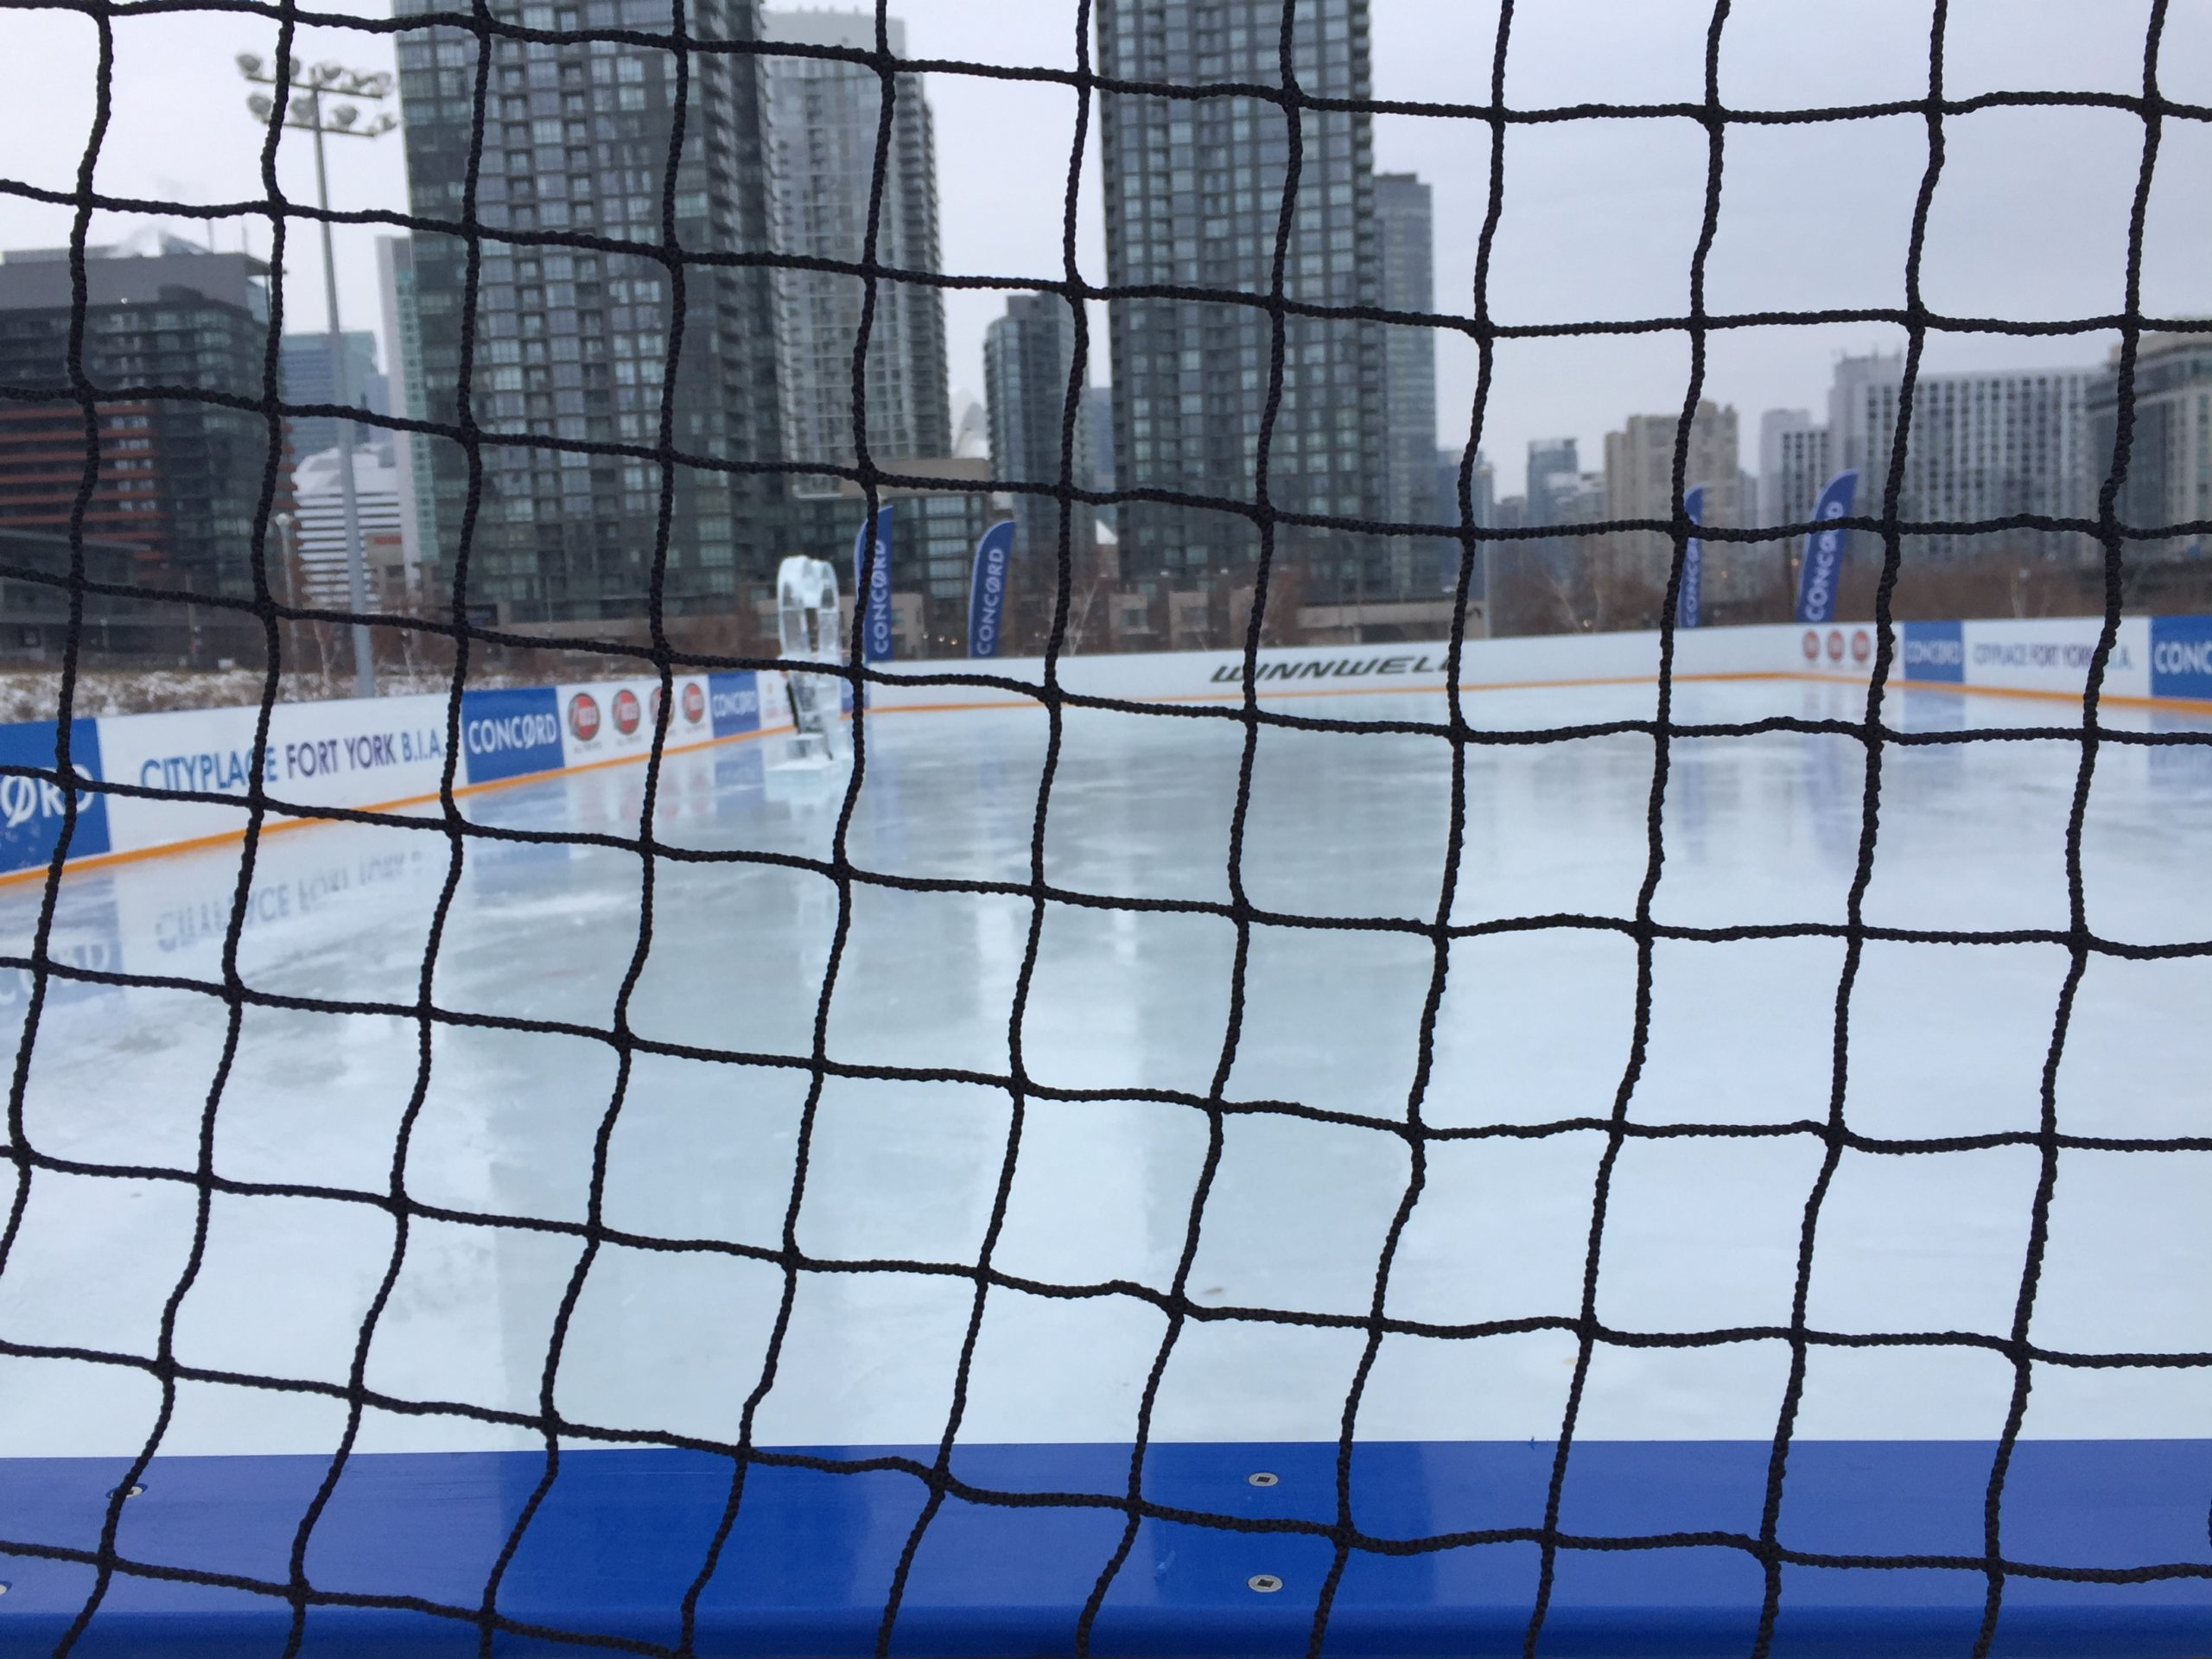 City Place Canoe Landing refrigerated rink 60'x120′